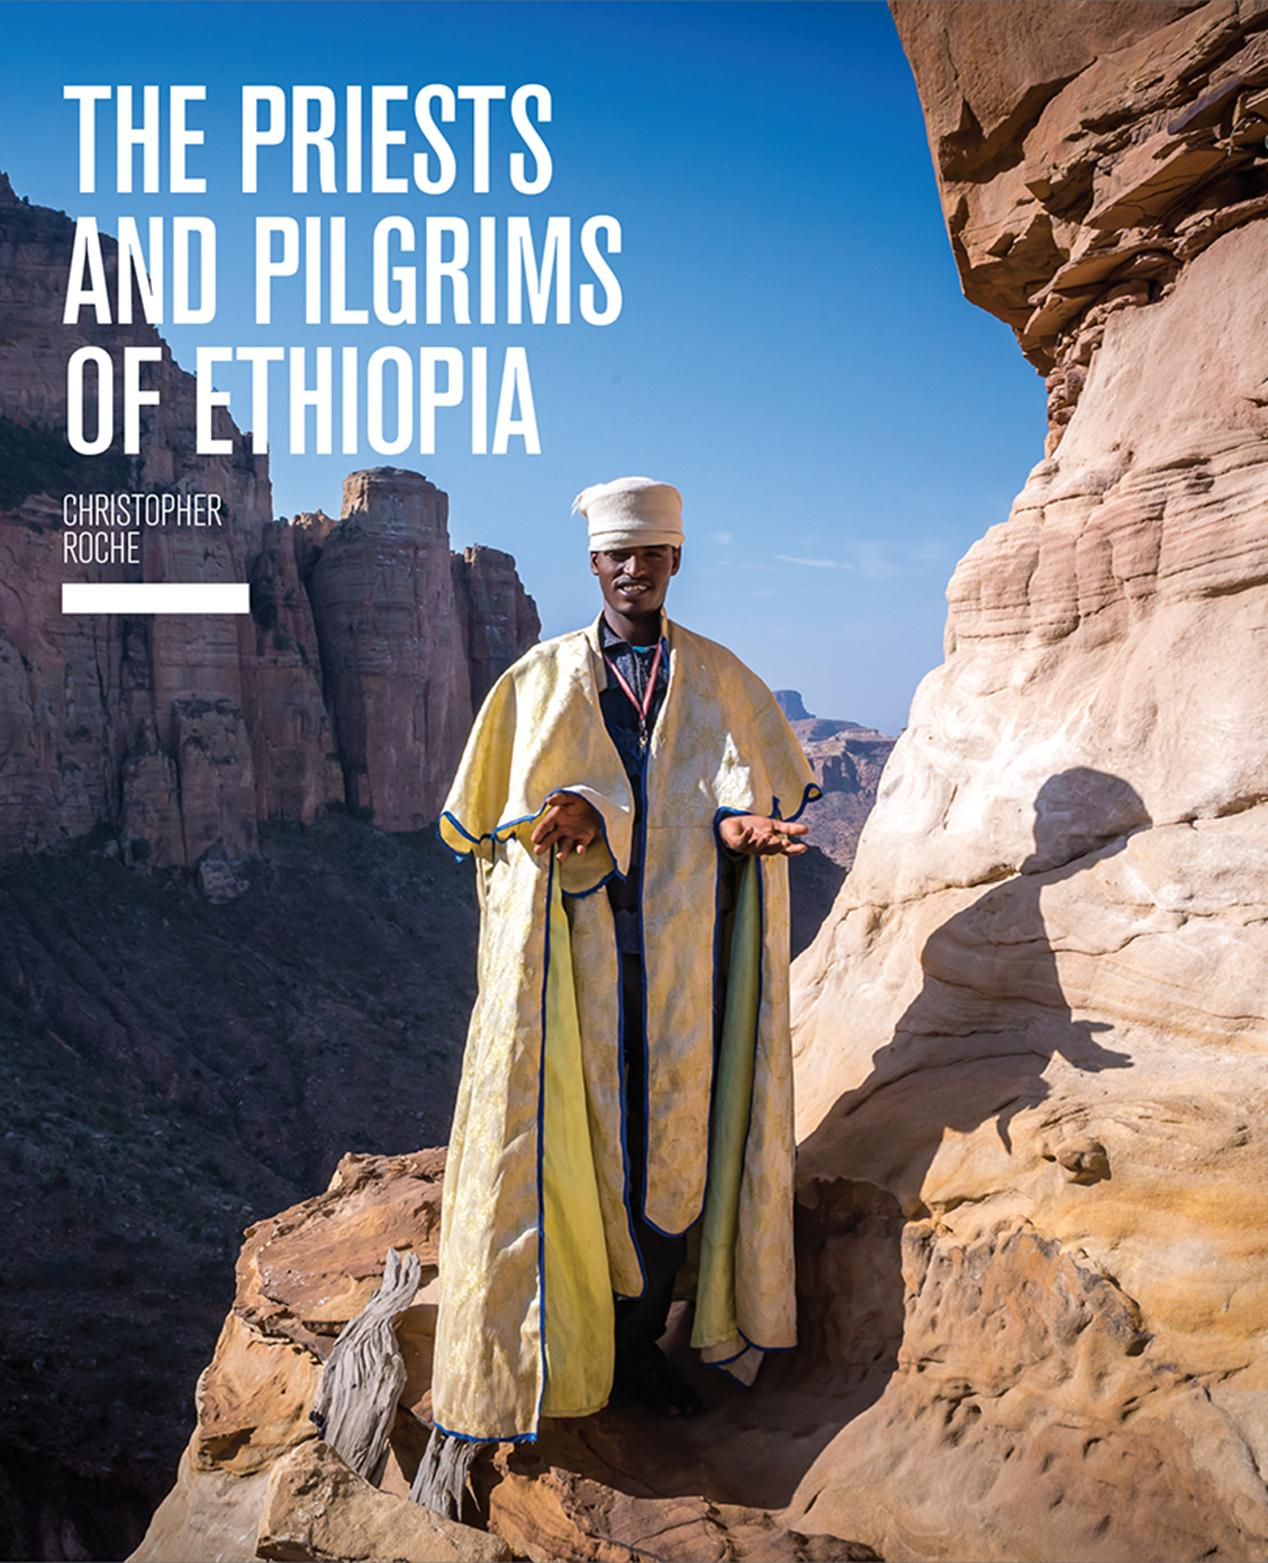 Chris_roche_priests_and_pilgrims_of_ethiopia